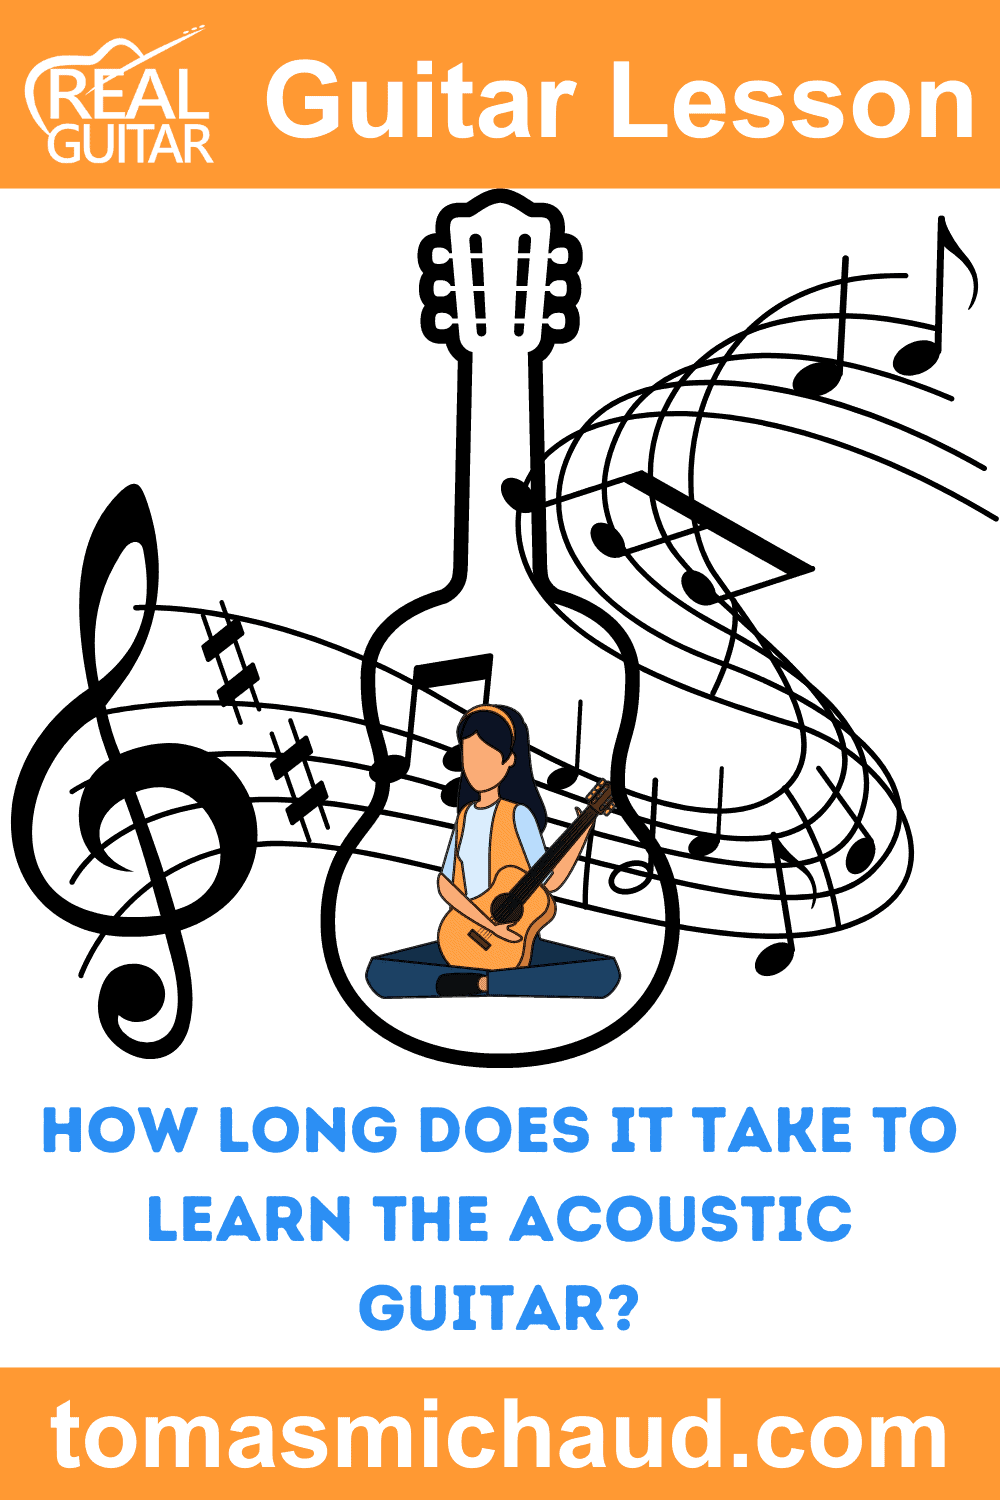 How Long Does It Take To Learn The Acoustic Guitar